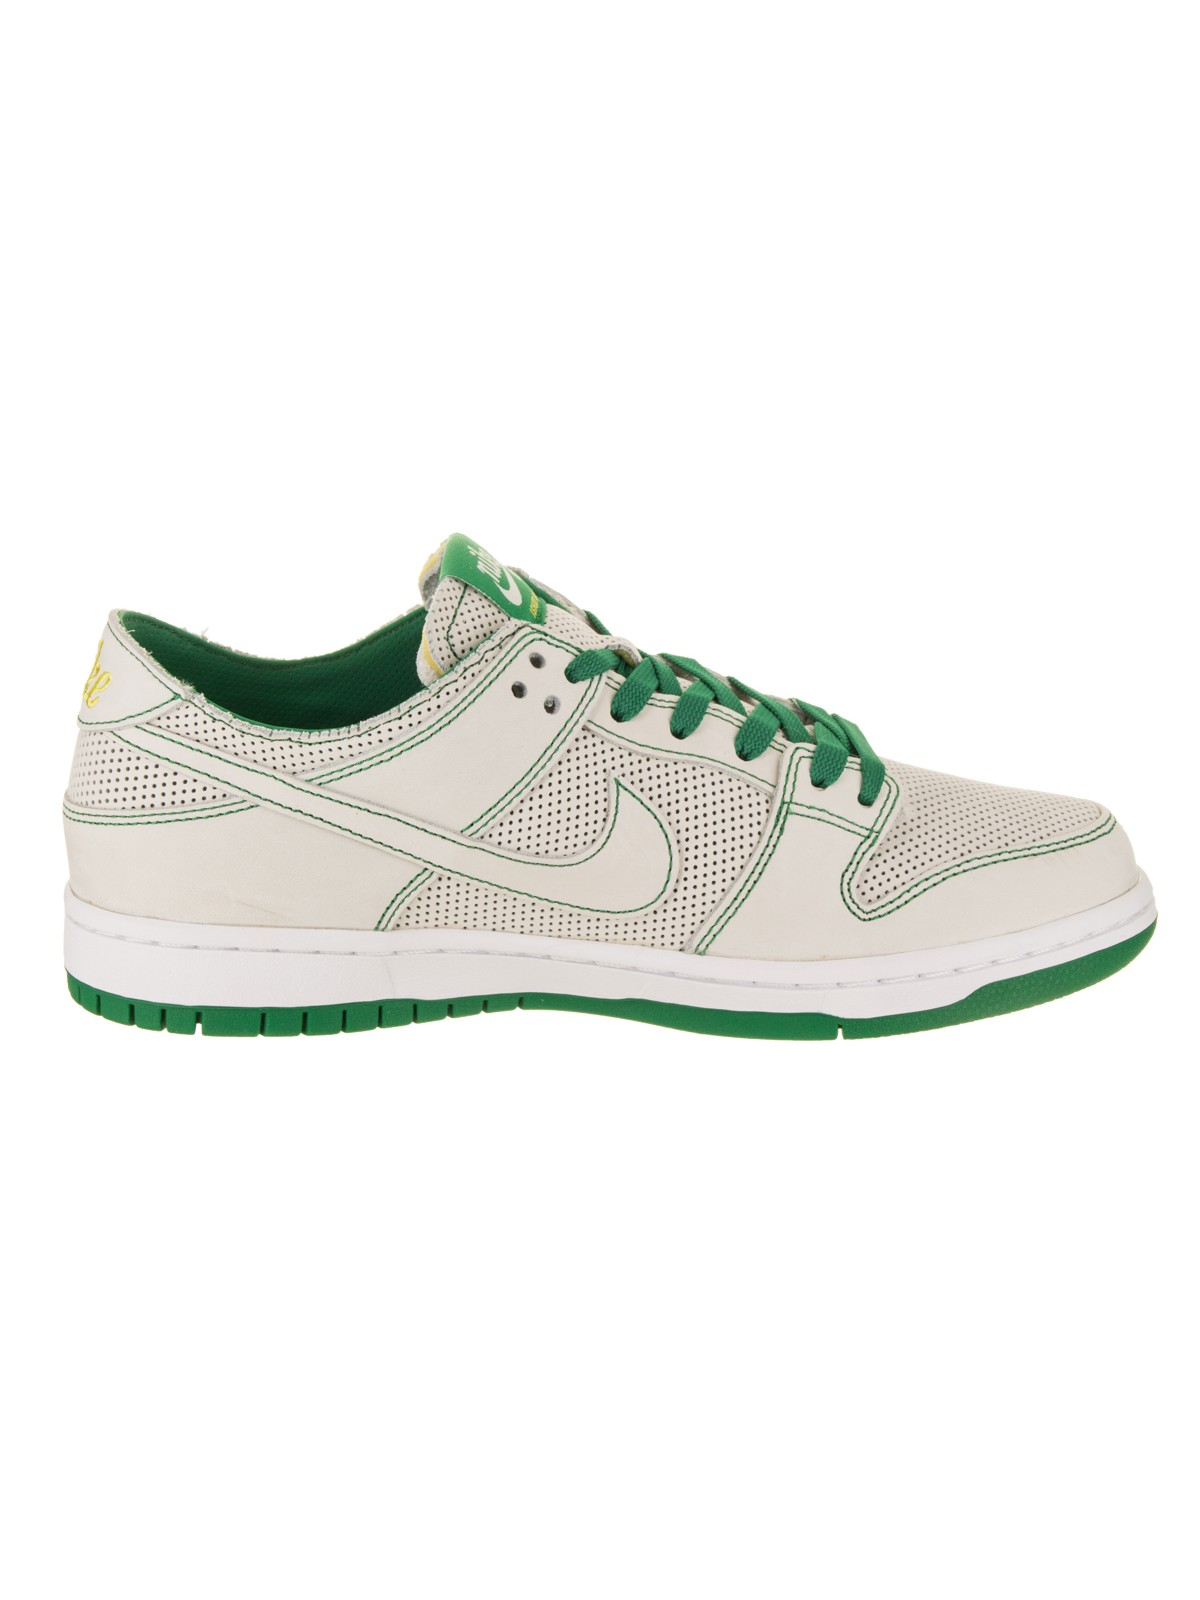 quality design 2b586 26f9a Nike - Mens Nike SB Zoom Dunk Low Pro Decon QS Ishod Wair White Aloe Verde  To - Walmart.com